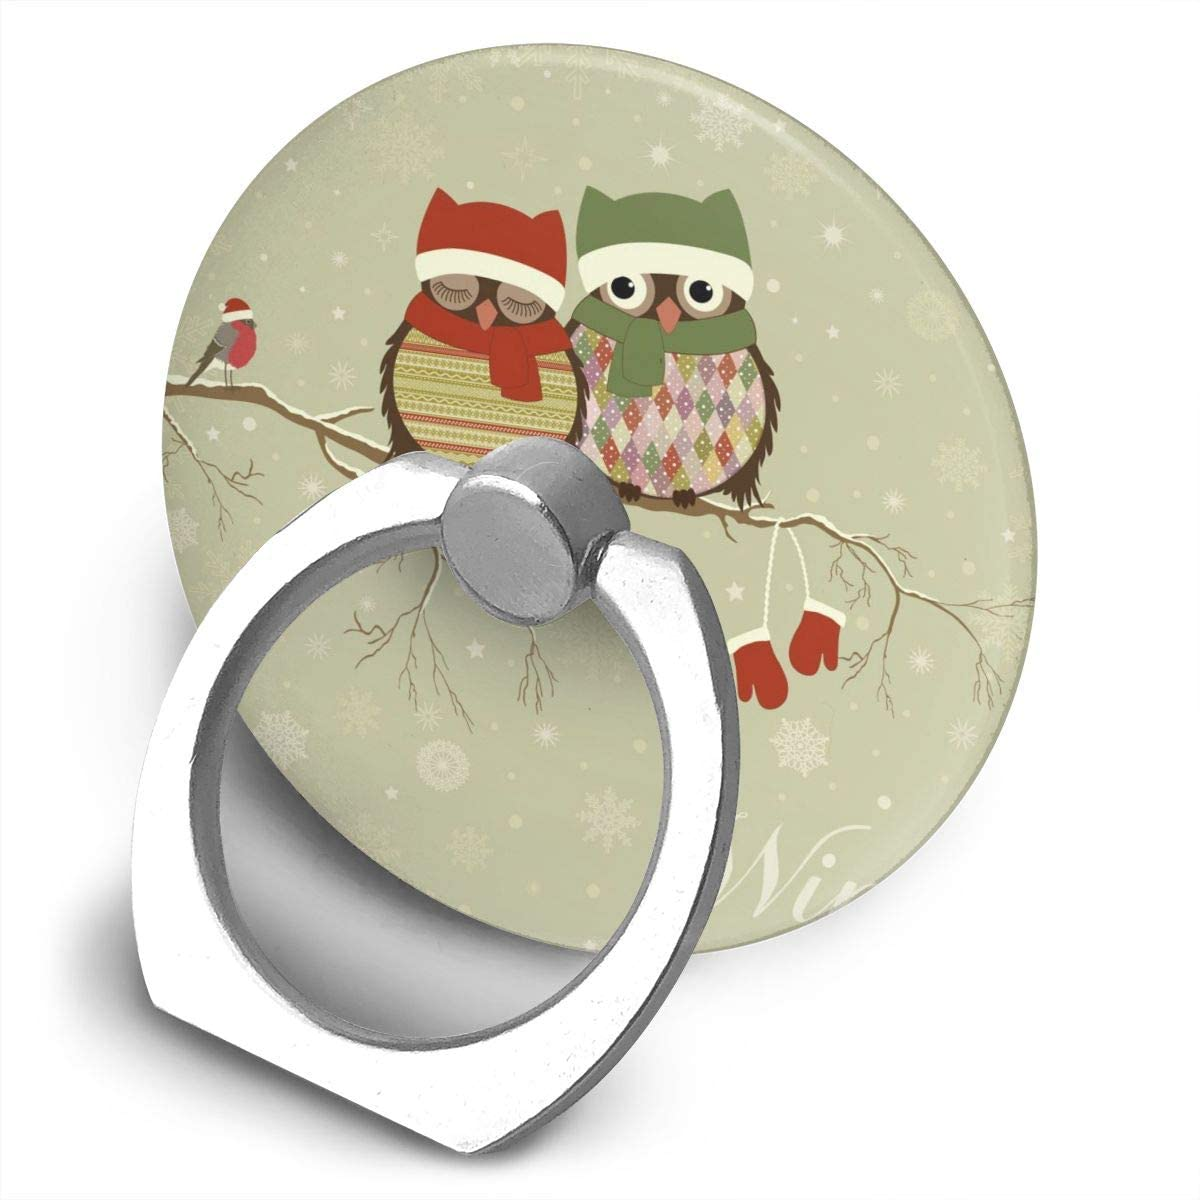 Universal Phone Ring Holder Cute Animal Christmas Owls in Winter Round Cell Phone Ring Stand Adjustable 360°Rotation Finger Kickstand Grip-Silver Mobile Phone Stand for Women Kids Men Ladies Smartpho